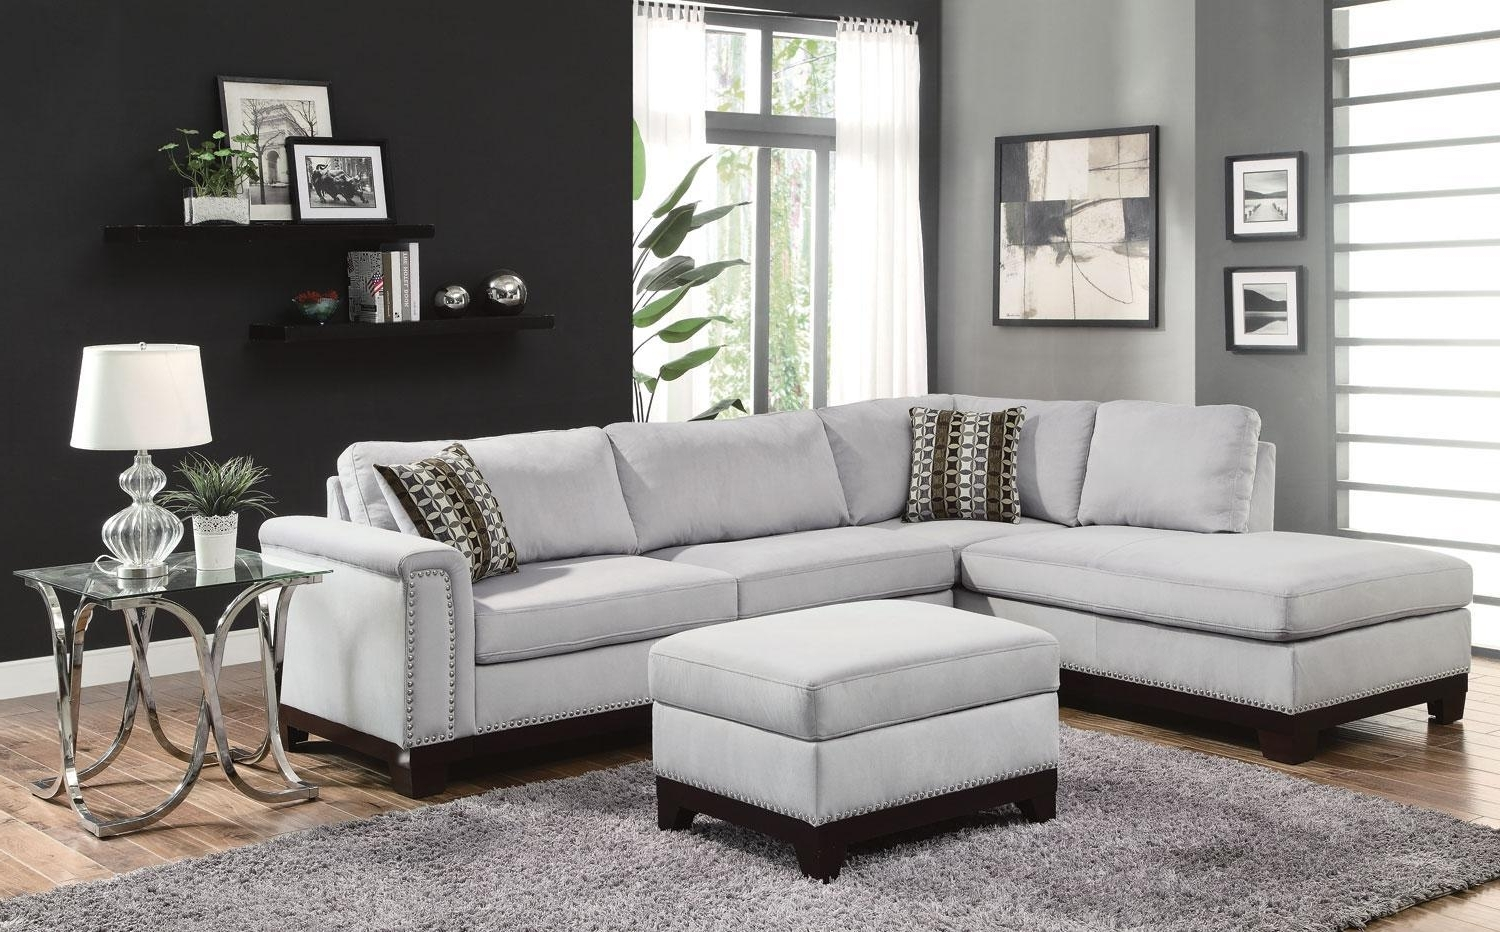 Best Sofas Ideas – Sofascouch Pertaining To Current Sectional Sofas With Nailheads (View 8 of 20)